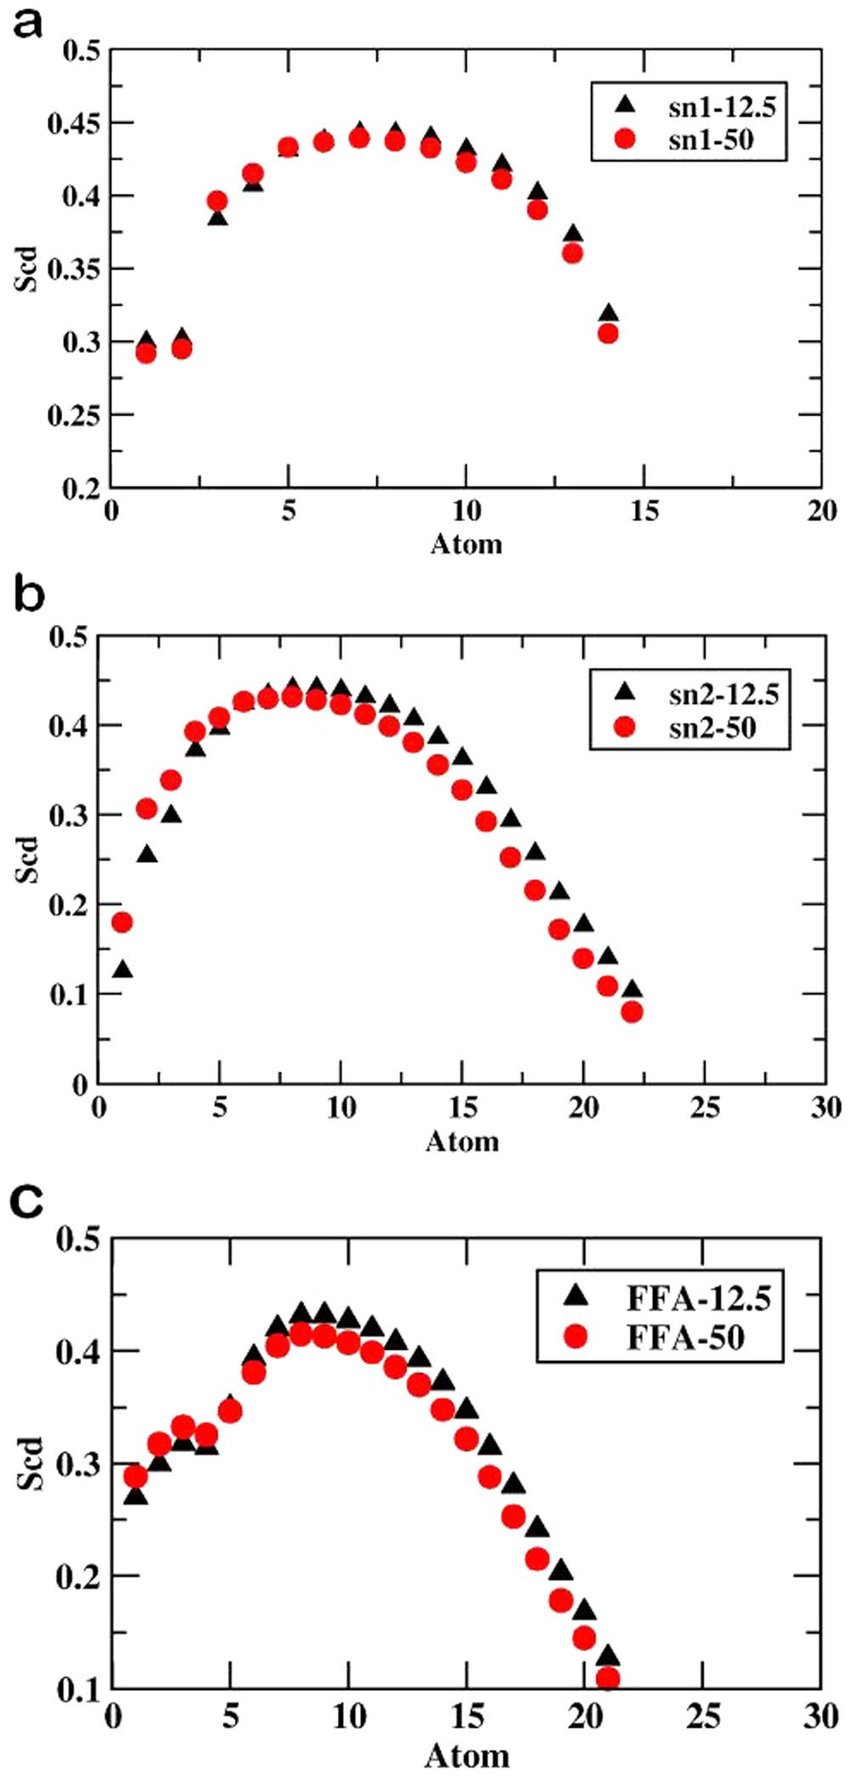 hight resolution of values of order parameter s cd along the a sn1 of memb 12 5